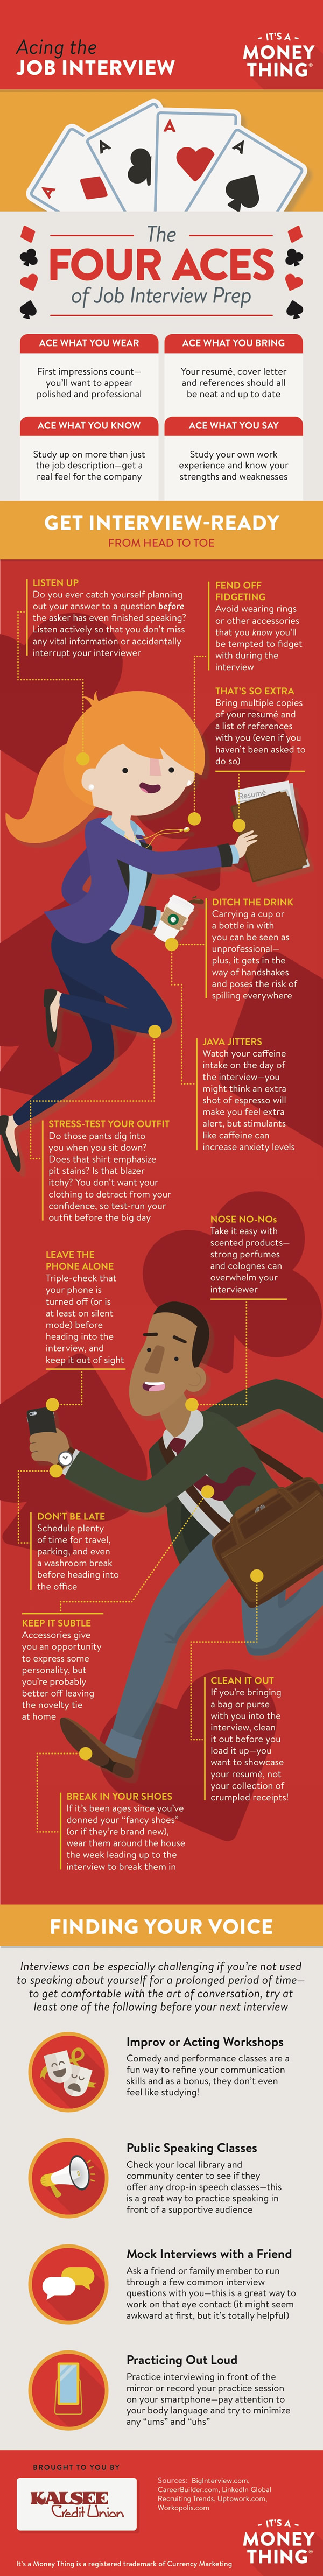 acing the job interview infographic, click for transcription